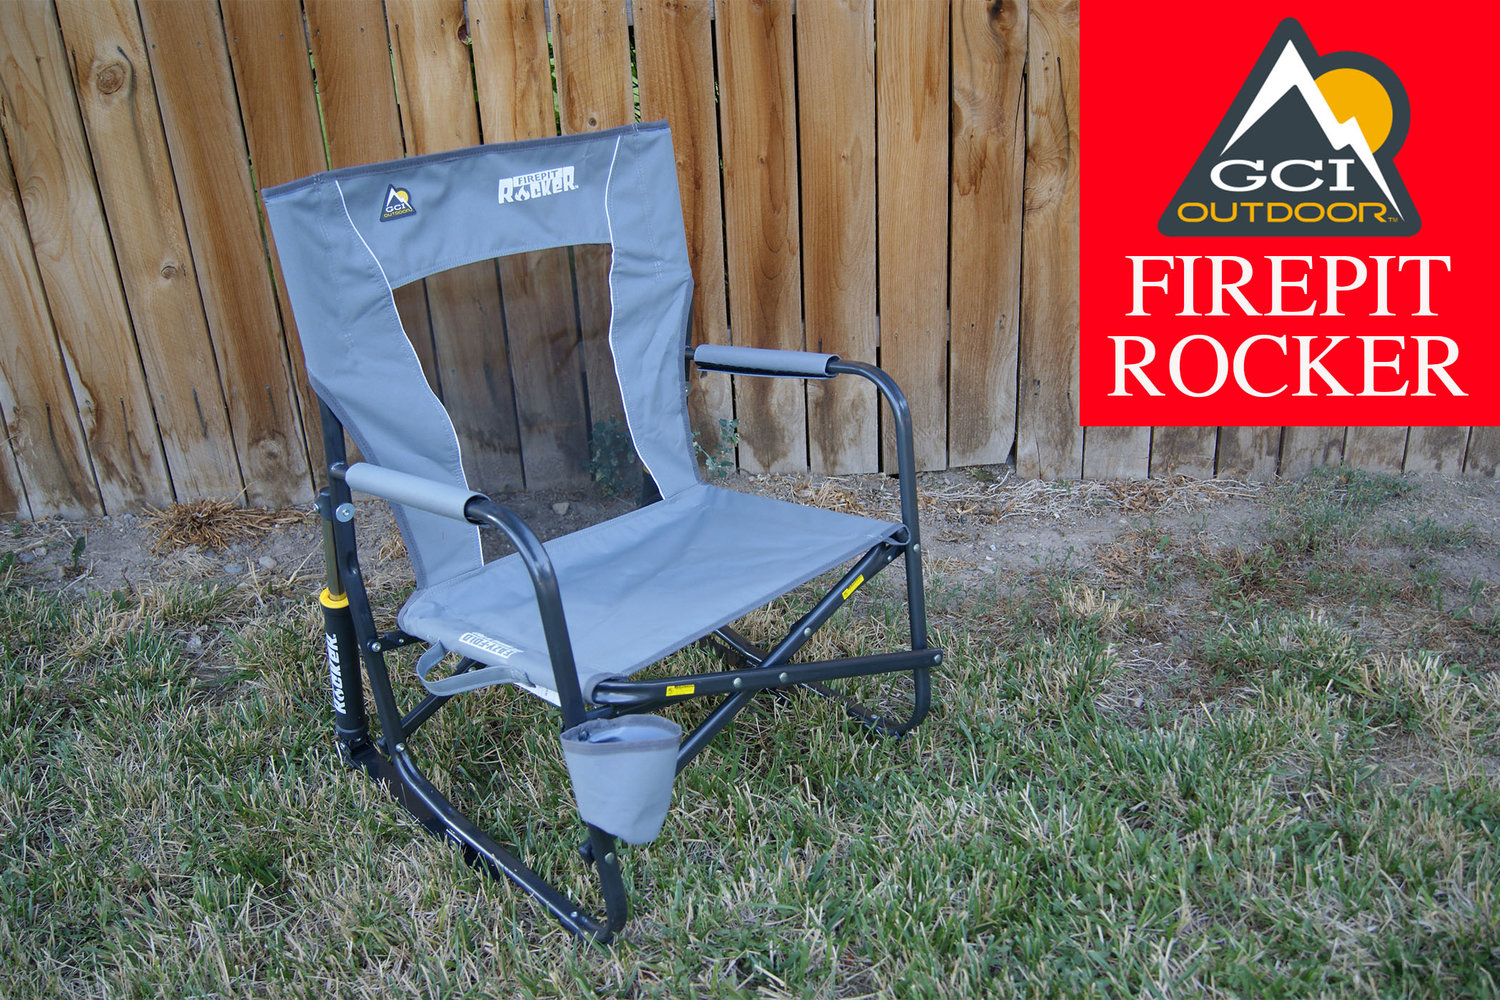 Marvelous Not Another Camp Chair Review Gci Firepit Rocker Gmtry Best Dining Table And Chair Ideas Images Gmtryco